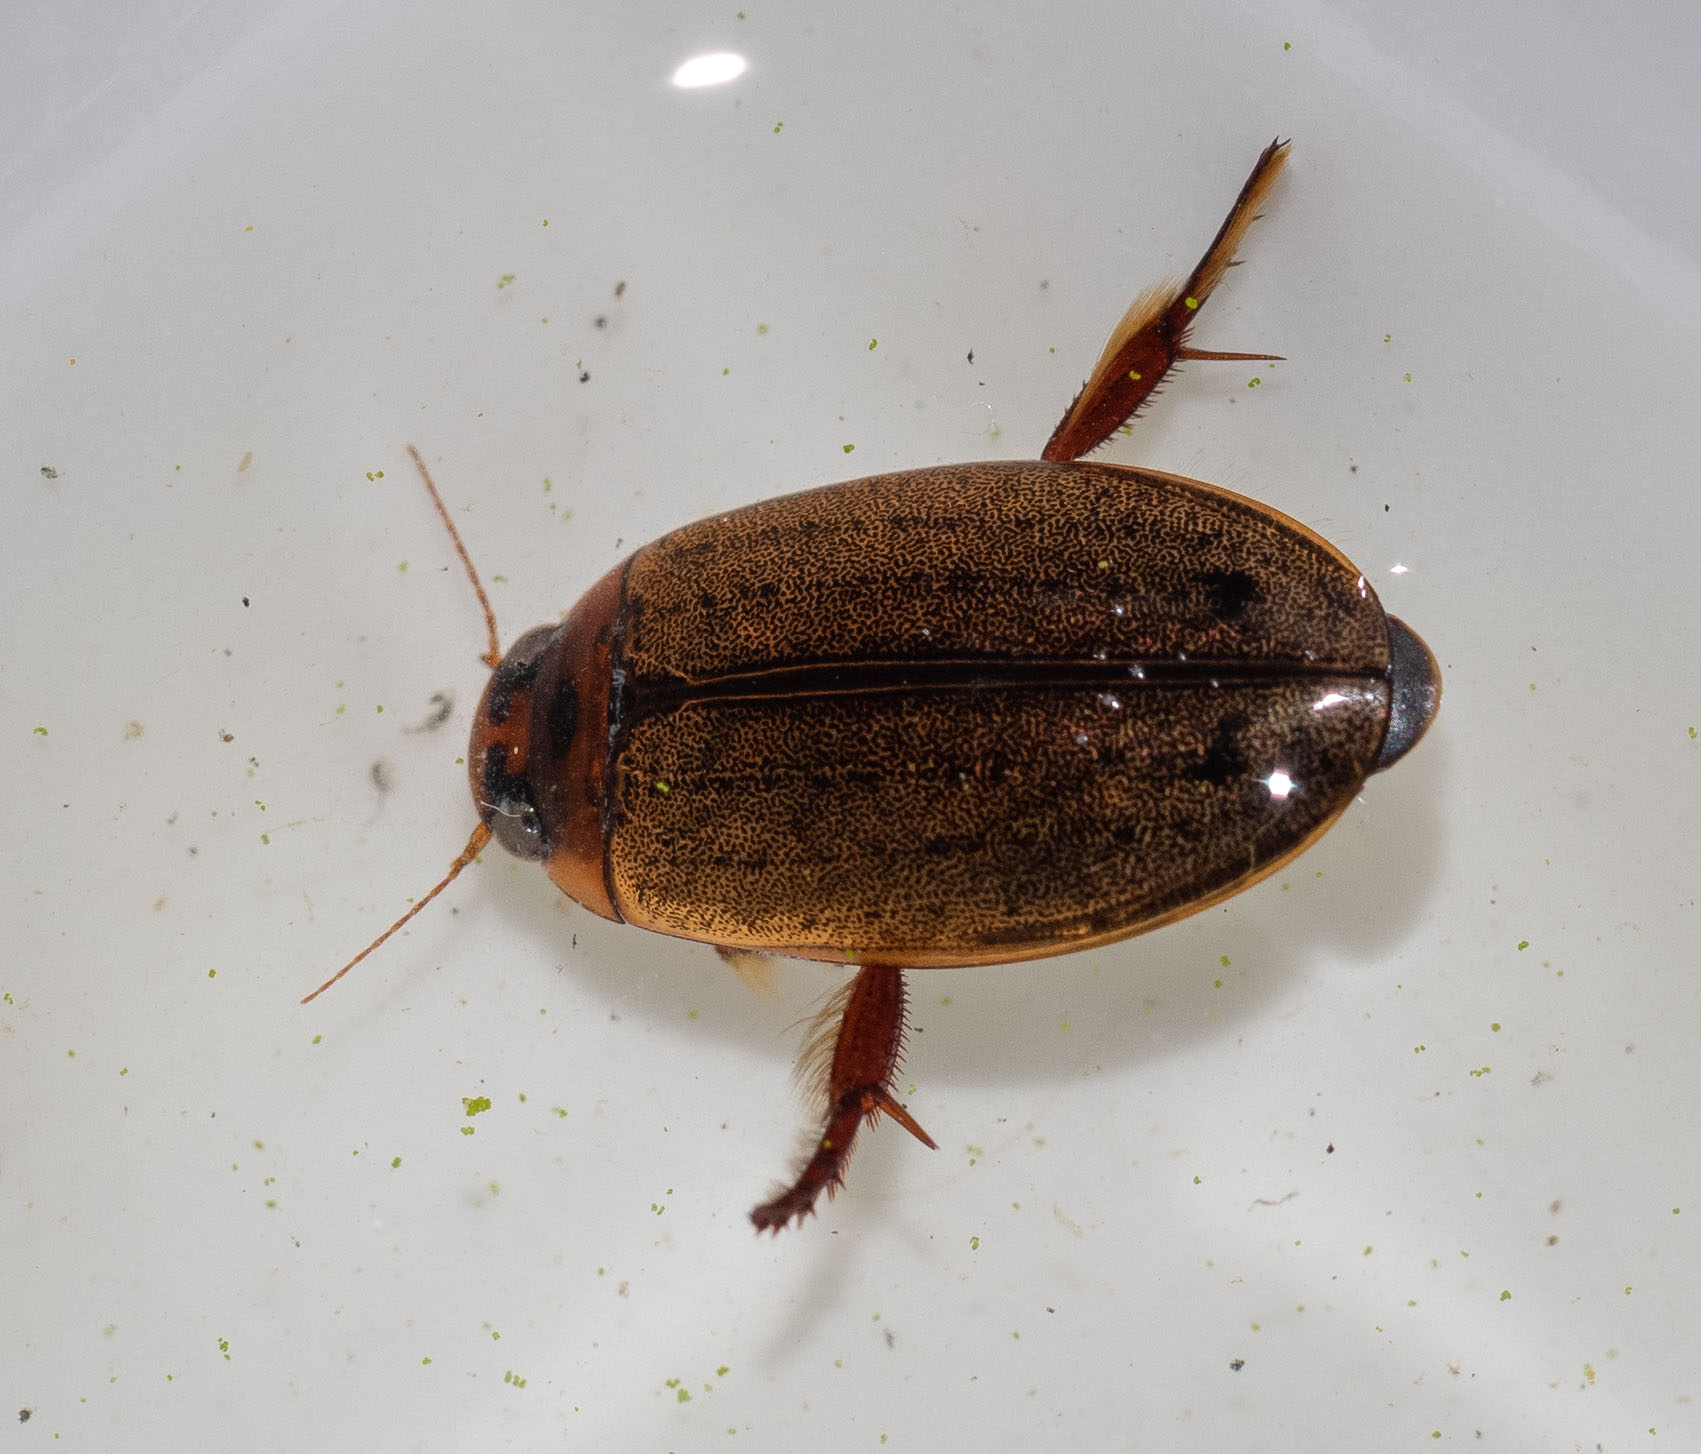 diving beetle (Order: Coleoptera)